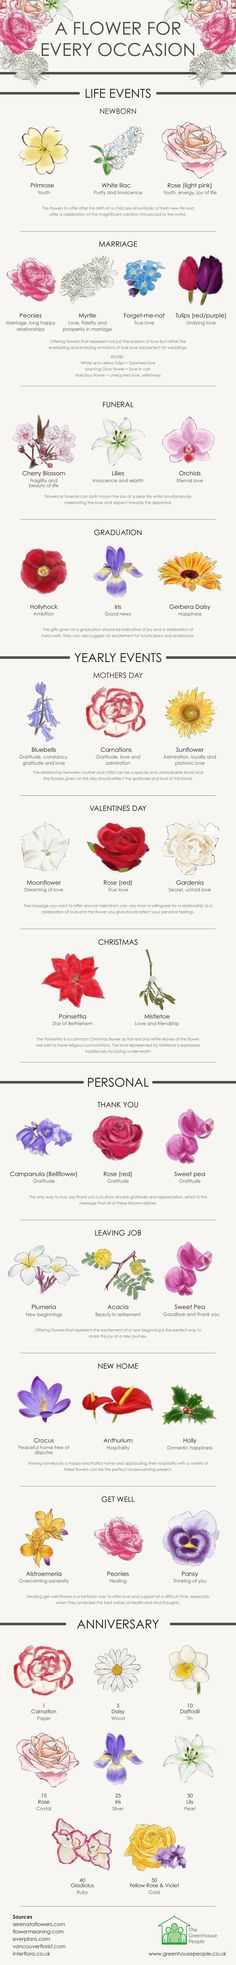 Flower meanings - How To Choose The Perfect Flower For Your Occasion Infographic Types Of Flowers, Beautiful Flowers, Flowers For Love, Beautiful Gifts, Draw Flowers, Paint Flowers, Flower Tattoo Meanings, Tattoo Flowers, Orchid Tattoo Meaning